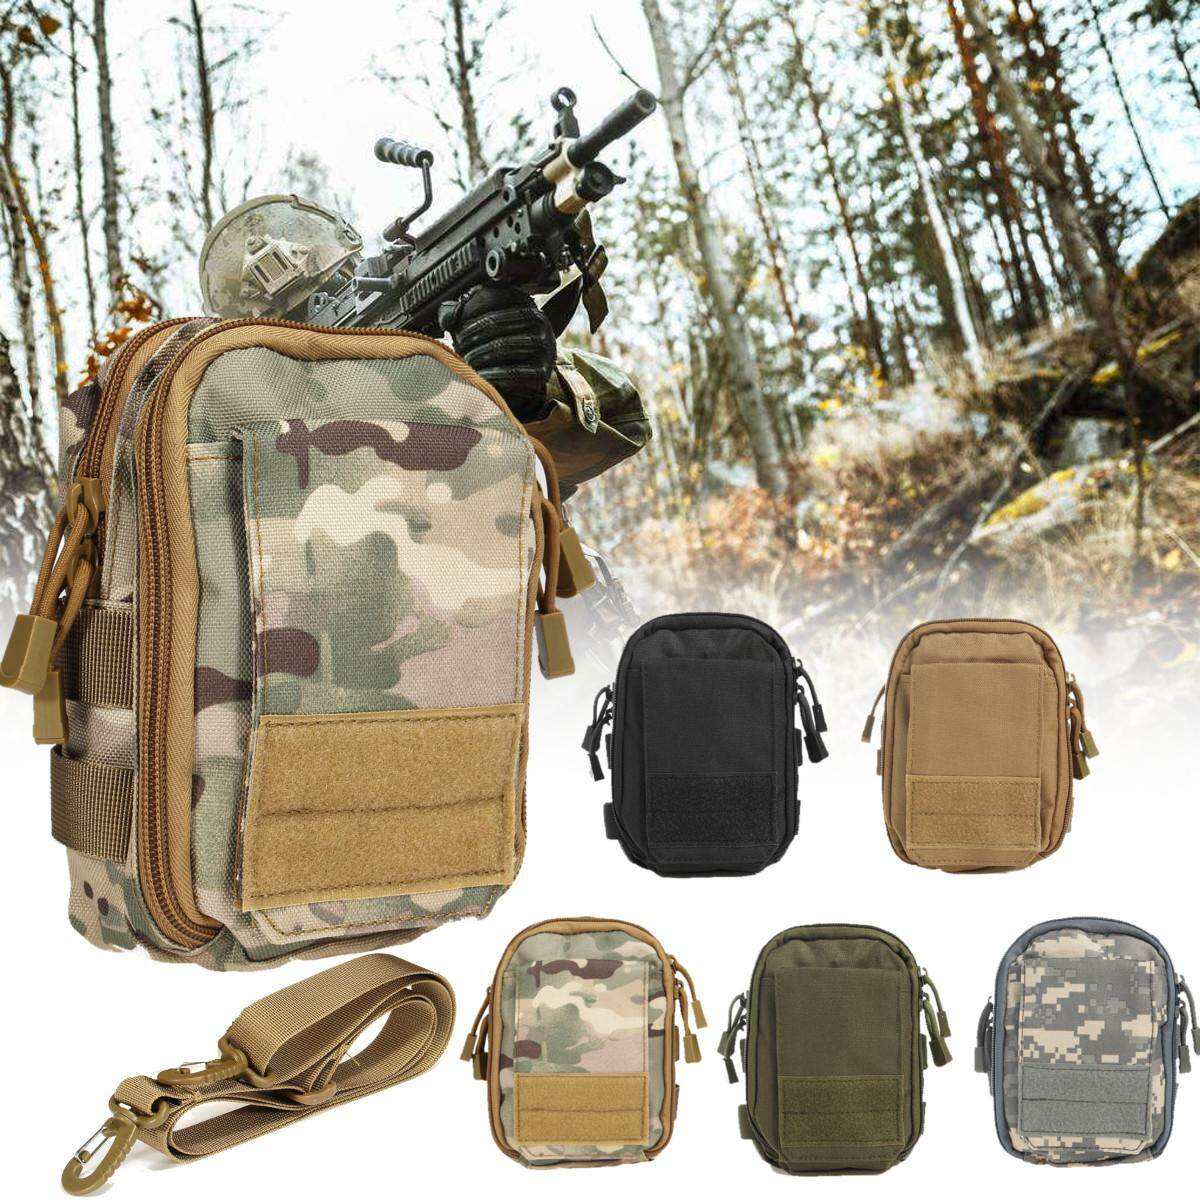 Army Green Tactical Camping Military Pouch Belt Waist Bag Phone Pocket Waterproof Strap Intl Free Shipping